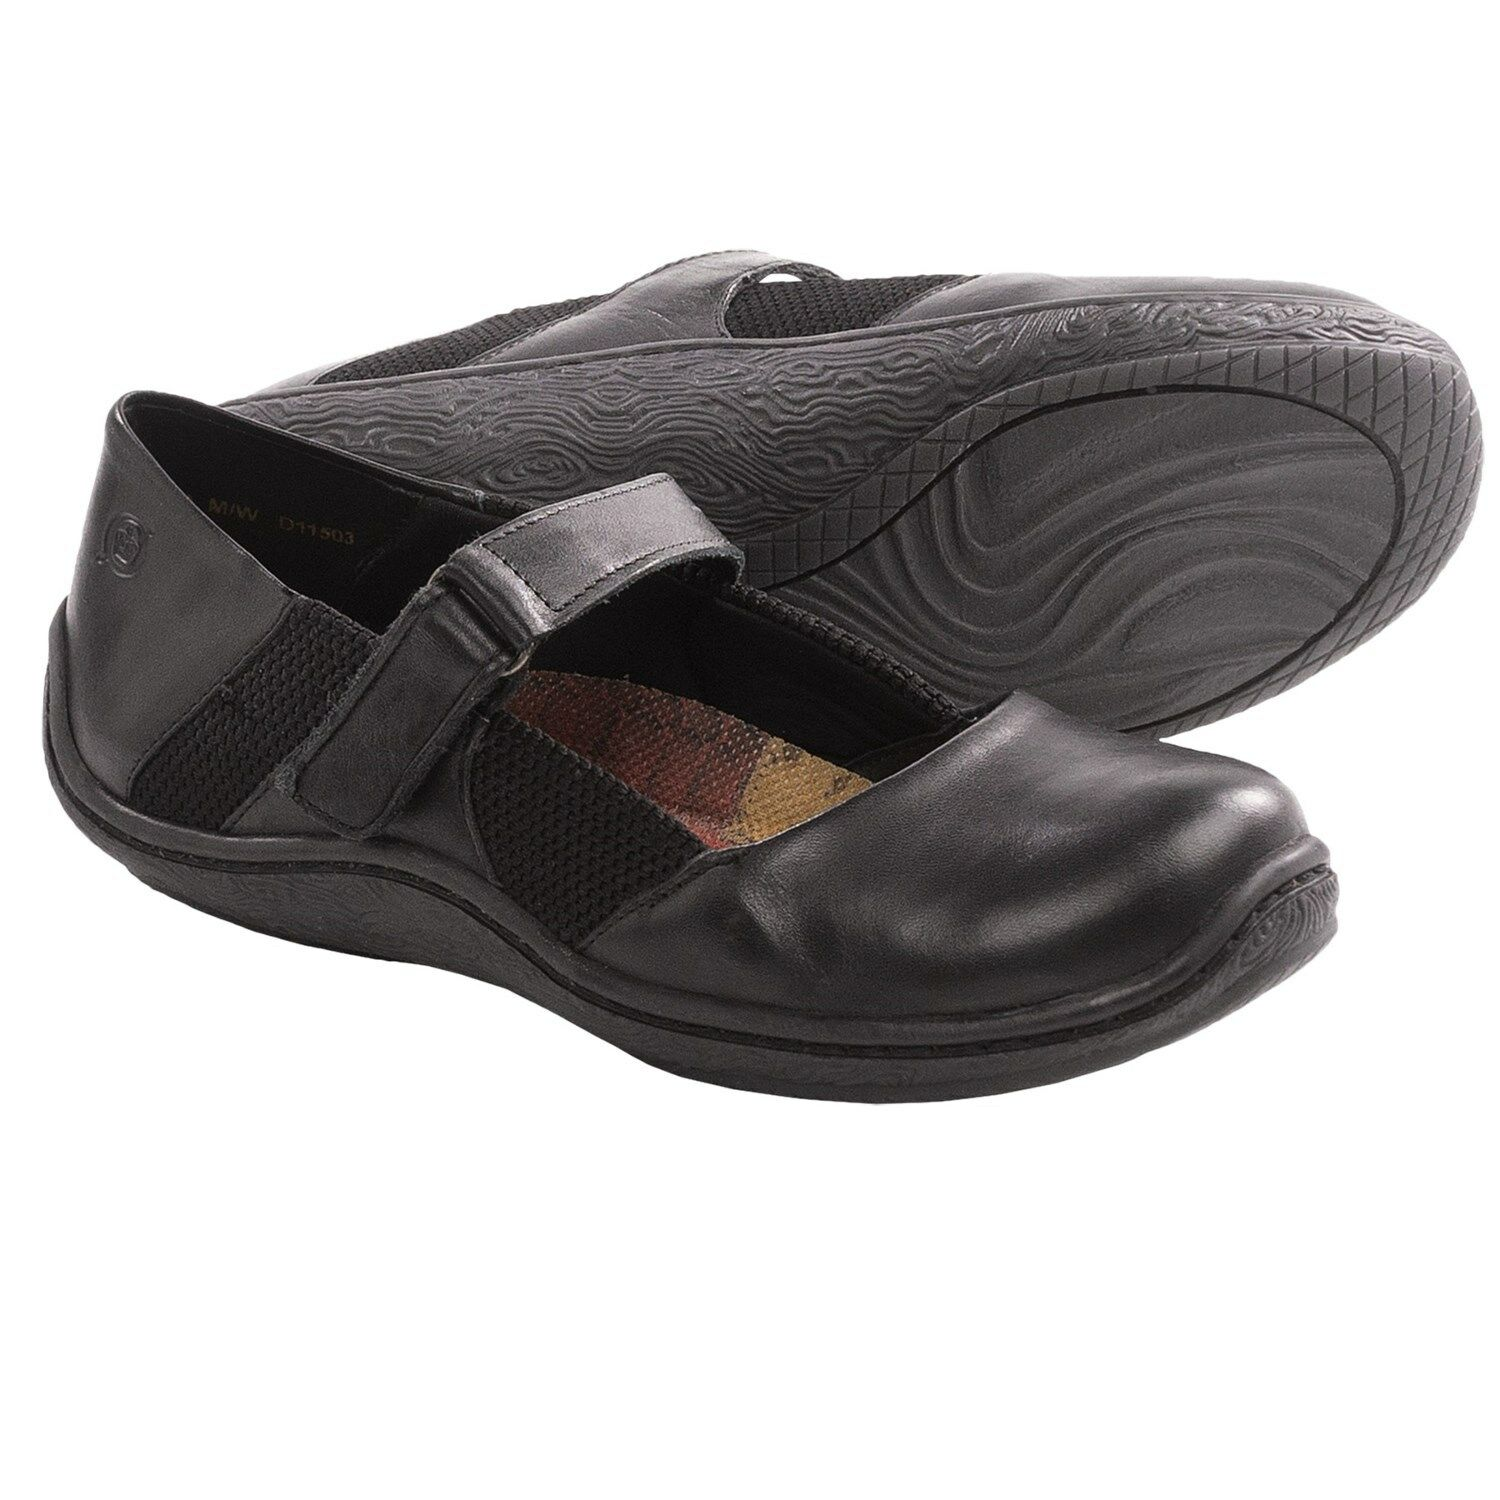 Neuf Born Femmes Connie Mary Jane Ballerines Chaussure Blk D11503 Taille 8 39